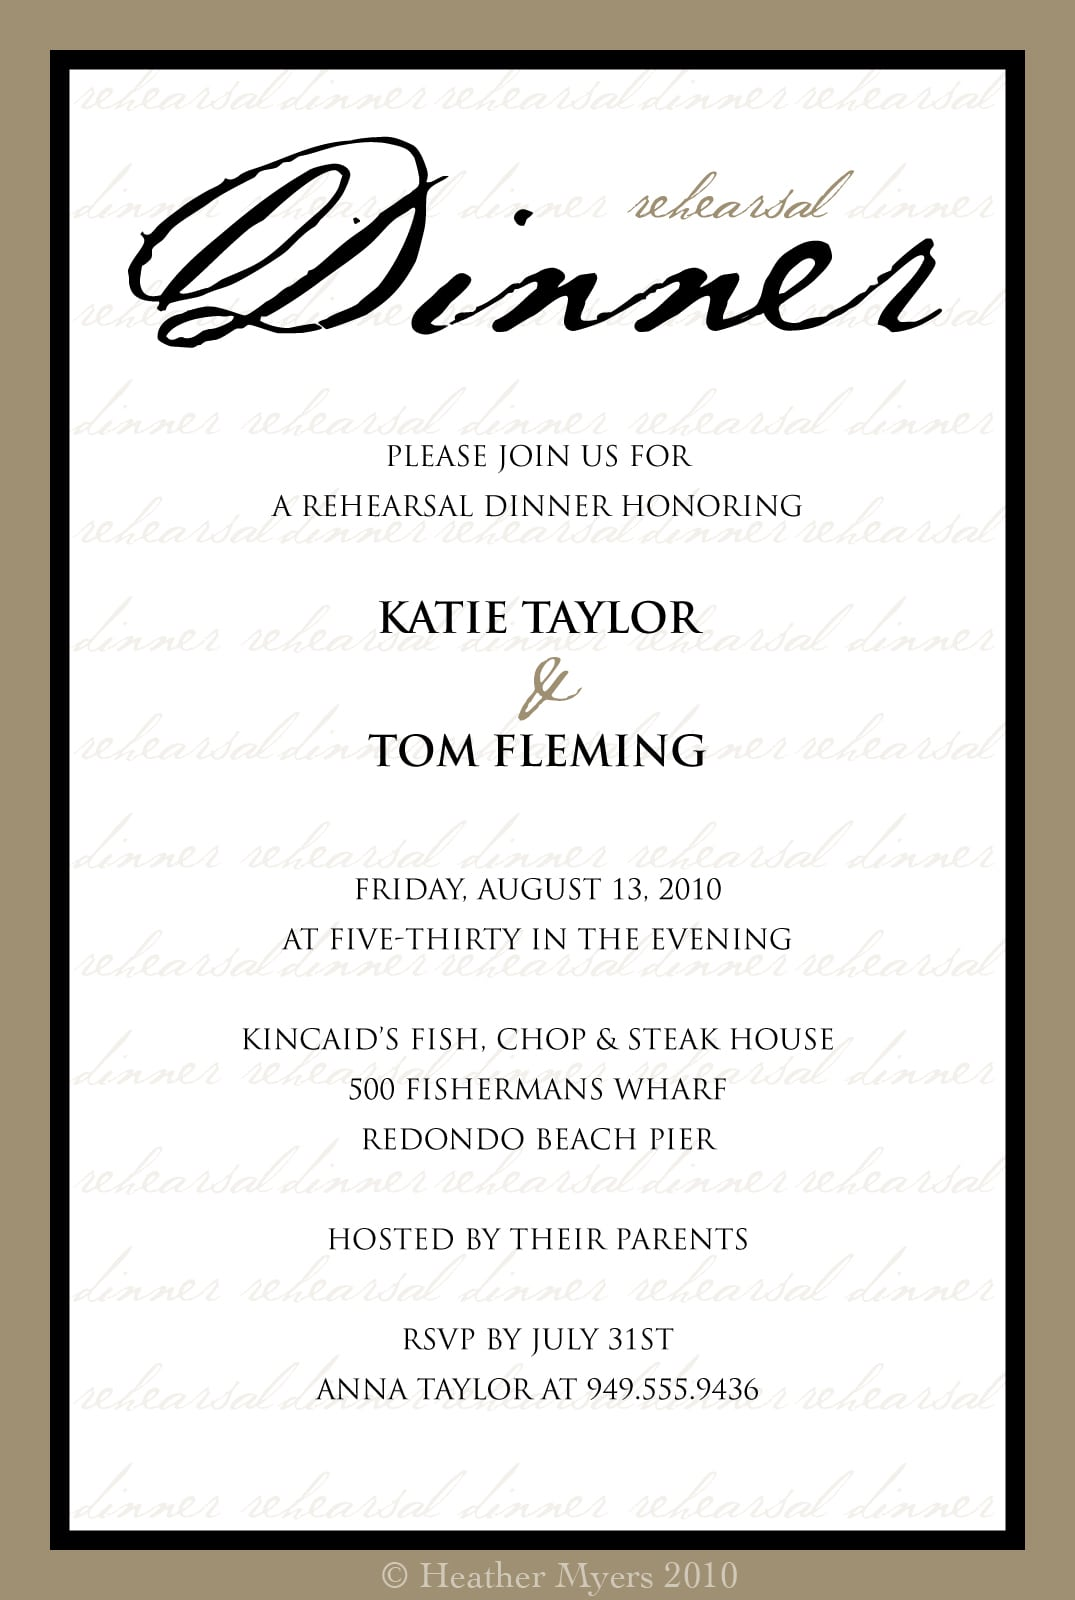 ... Gala Invitation Wording Wedding Dinner Invitation Wording Samples ...  Gala Invitation Wording